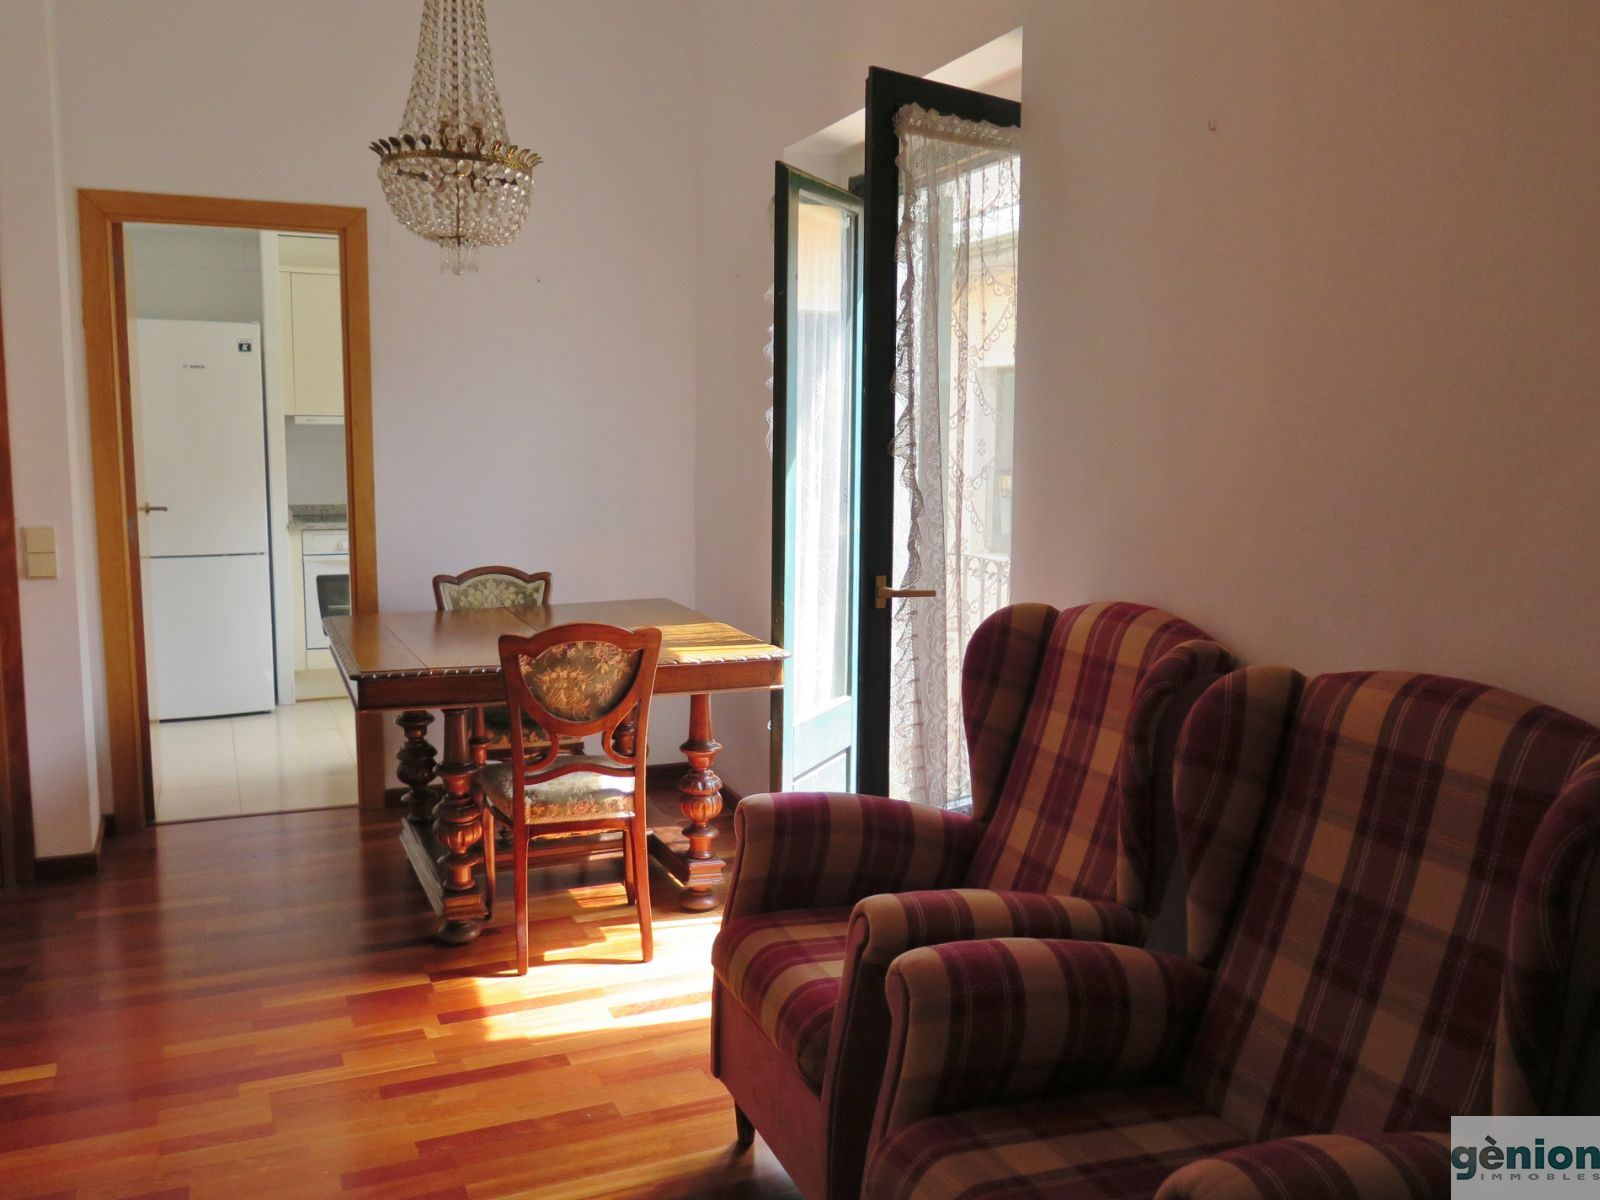 FLAT IN BARRI VELL. DUPLEX IN THE TOP FLOOR, WITH 3 BEDROOMS AND 2 BATHROOMS